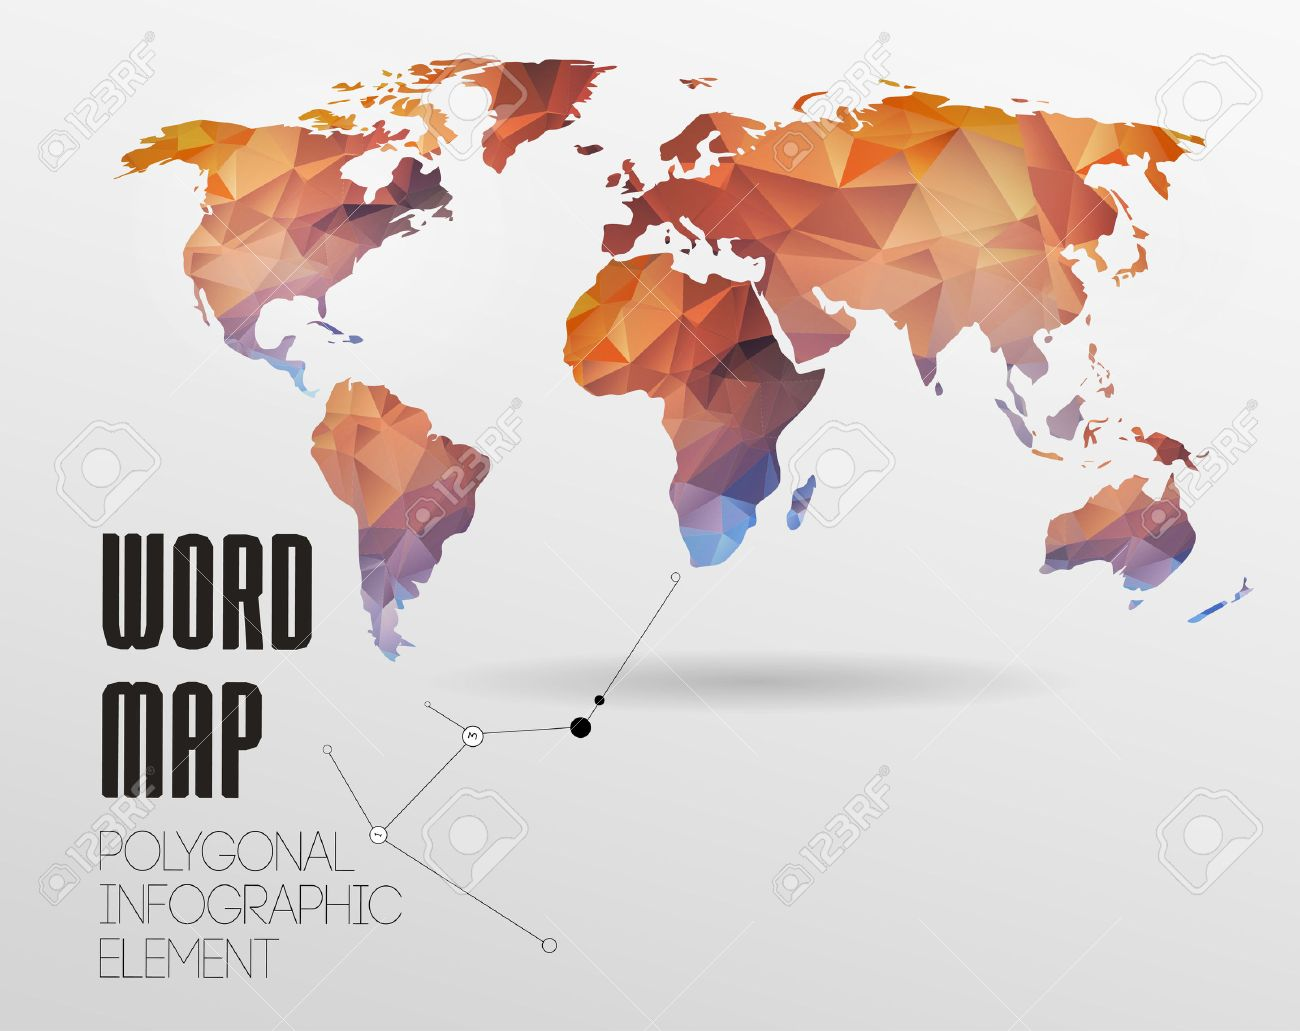 World map background in polygonal style vector background royalty world map background in polygonal style vector background stock vector 23827793 gumiabroncs Image collections